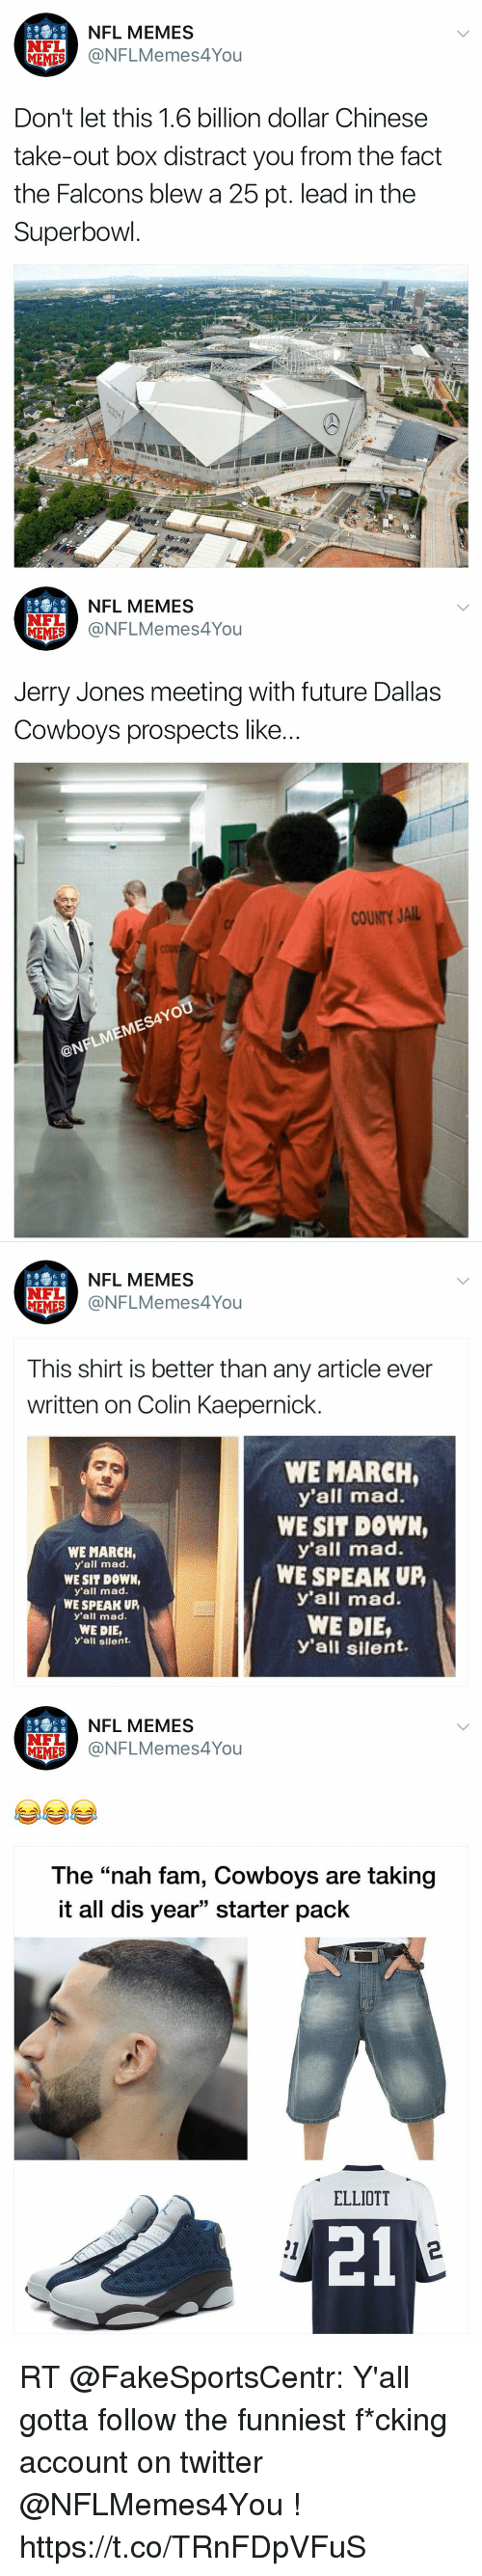 """Colin Kaepernick, Dallas Cowboys, and Fam: NFL MEMES  EMES @NFLMemes4You  Don't let this 1.6 billion dollar Chinese  take-out box distract you from the fact  the Falcons blew a 25 pt. lead in the  Superbowl   NFL MEMES  ONFLMemes4You  NFL  Jerry Jones meeting with future Dallas  Cowboys prospects like...  COUNTY JAIL  MES4YO  @N   NFL MEMES  @NFLMemes4You  NFL  This shirt is better than any article ever  written on Colin Kaepernick.  WE MARCH,  y'all mad.  WE SIT DOWN  y'all mad.  WE SPEAK UP,  y'all mad.  WE DIE,  y'all silent.  WE MARCH  y'all mad.  WE SIT DOWN,  y'all mad  WE SPEAK UP  y'all mad.  WE DIE,  y'all silent.   NFL MEMES  NFL  MIEMES NFLMemes4You  The """"nah fam, Cowboys are taking  it all dis year"""" starter pack  ELLIOTT  21  1  2 RT @FakeSportsCentr: Y'all gotta follow the funniest f*cking account on twitter @NFLMemes4You ! https://t.co/TRnFDpVFuS"""